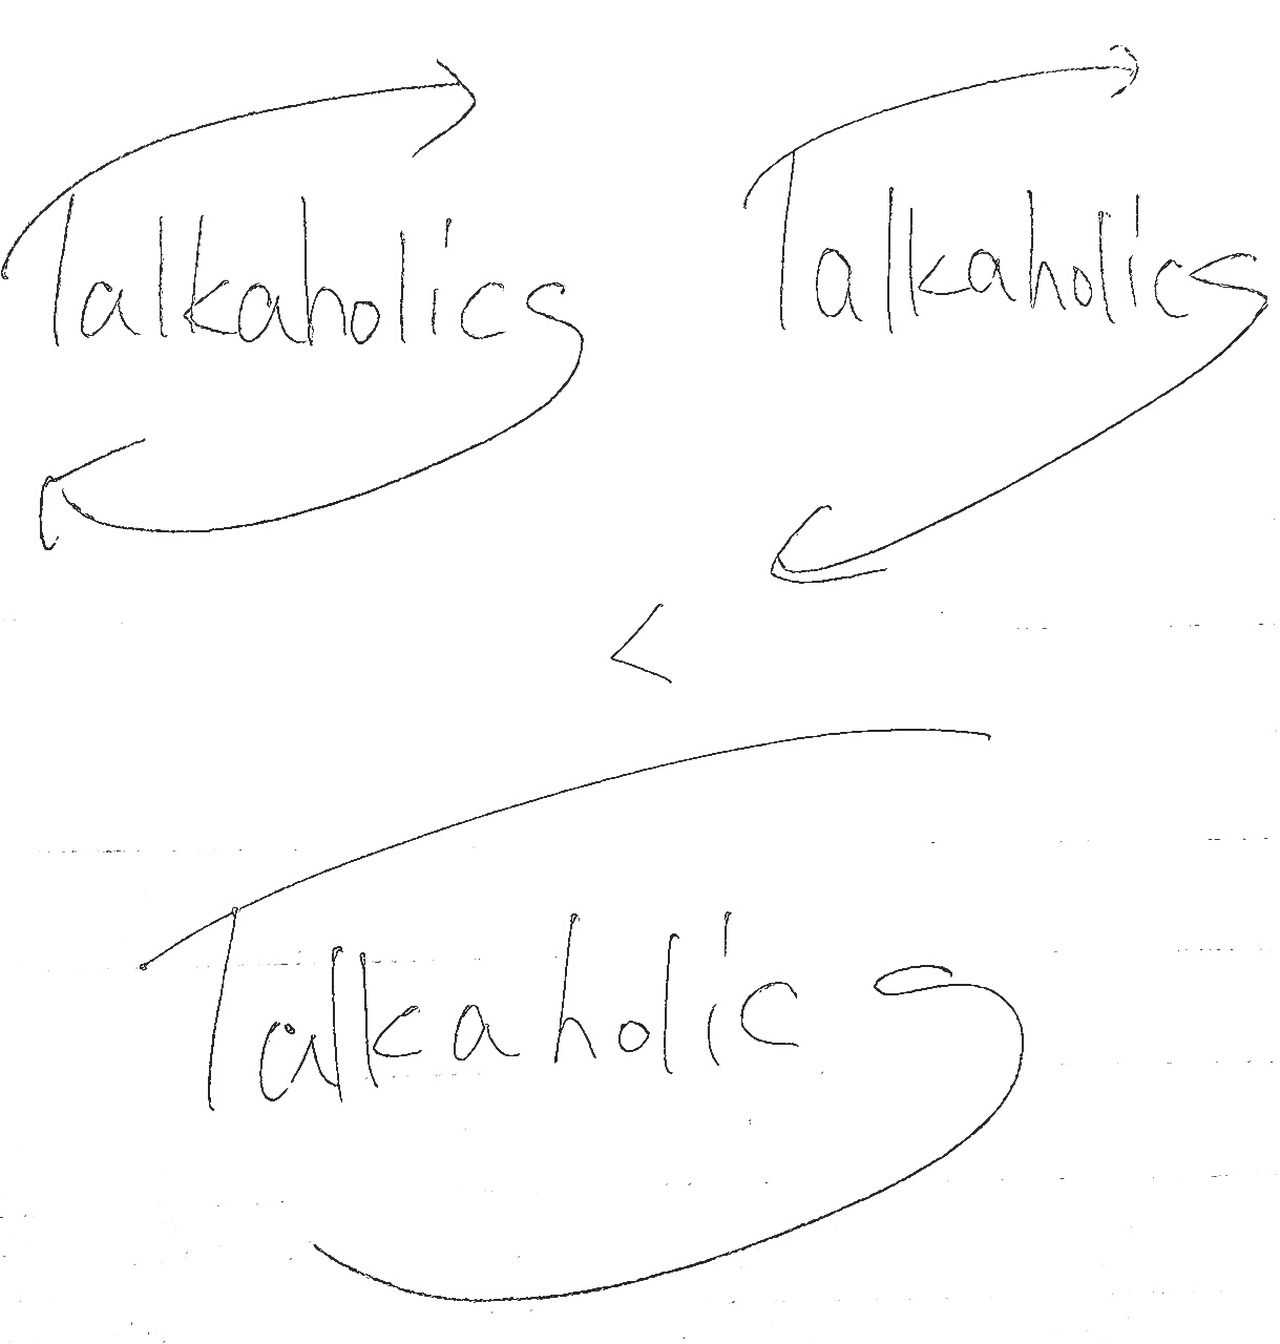 TALKAHOLICS Sketch No People Paper Science Day White Background Outdoors SWD Works